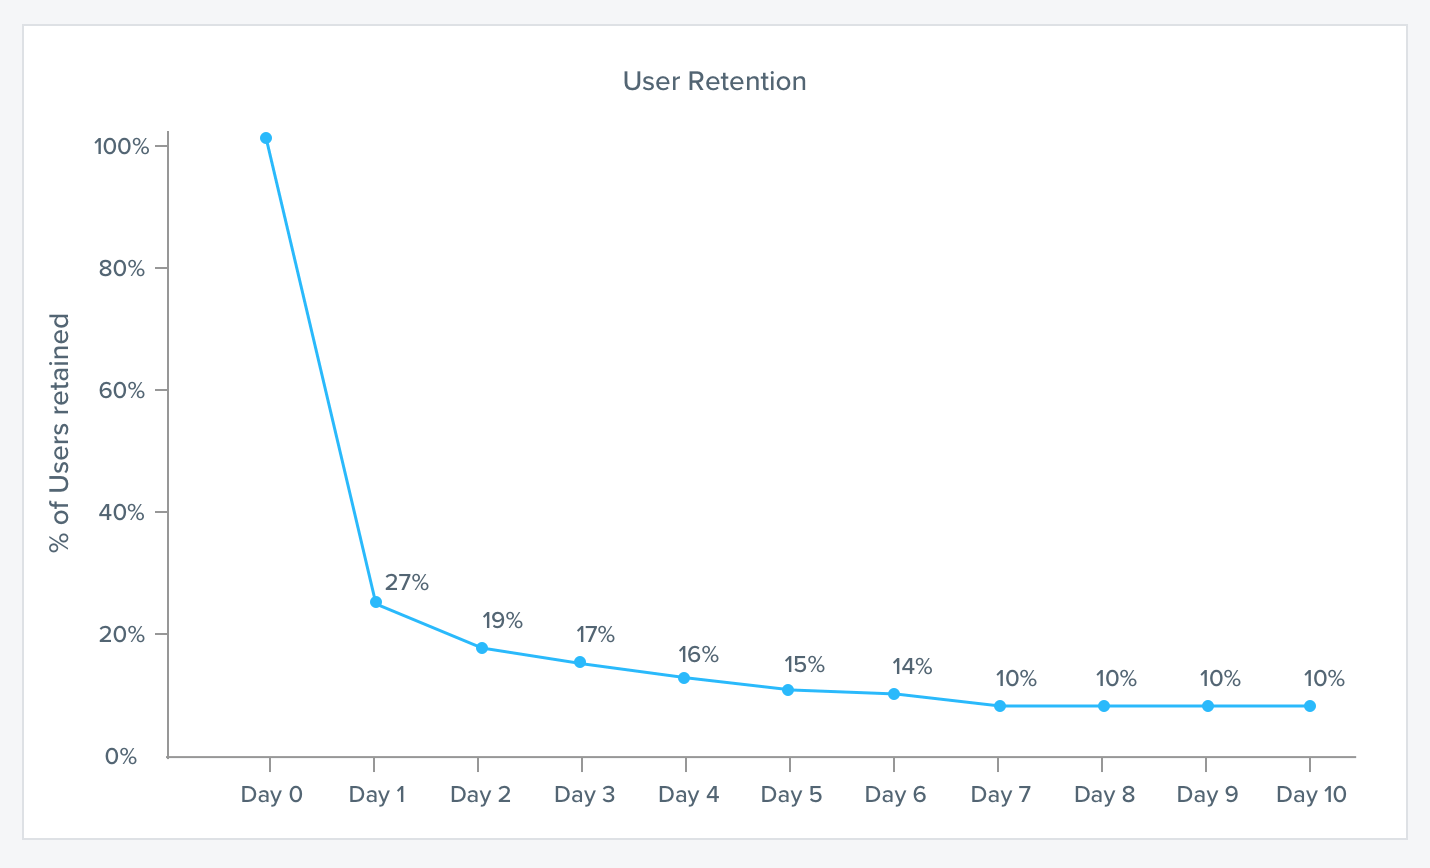 Data Visualization Best Practices - User retention curve